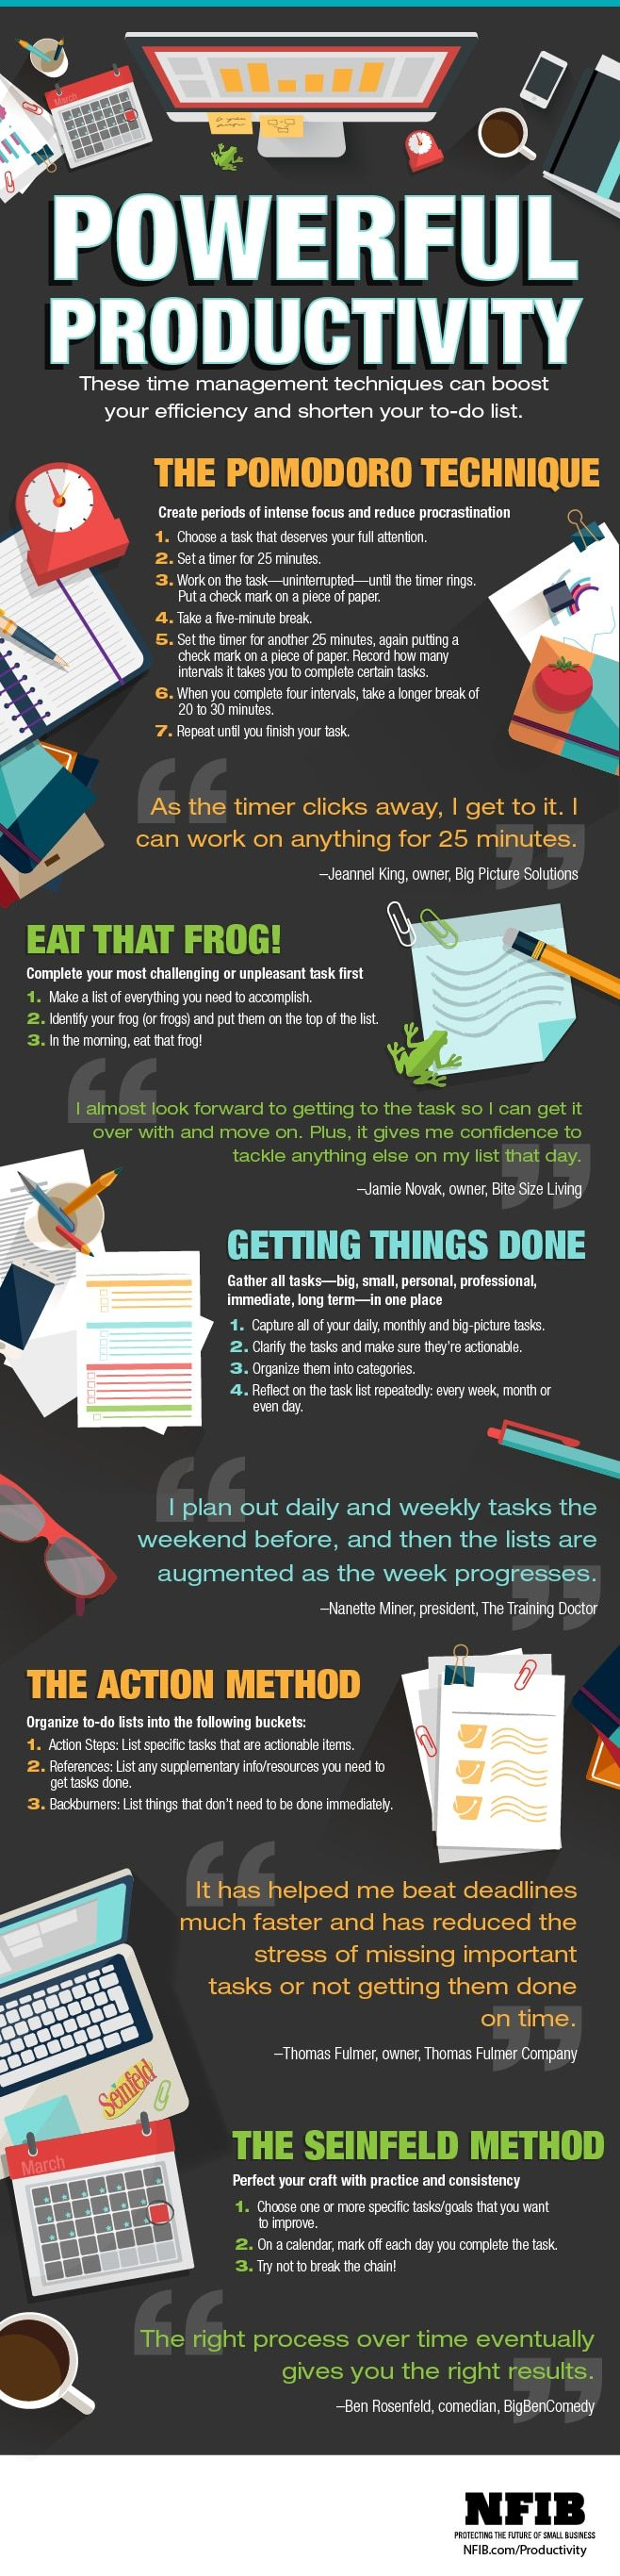 With so many distractions stealing our attention, most of us are looking for ways to be more efficient at work. Some entrepreneurs want higher work efficiency because they want to make time for more projects and additional opportunities. Others may want to leave work at a decent hour while still fulfilling theirresponsibilities. No matter which …